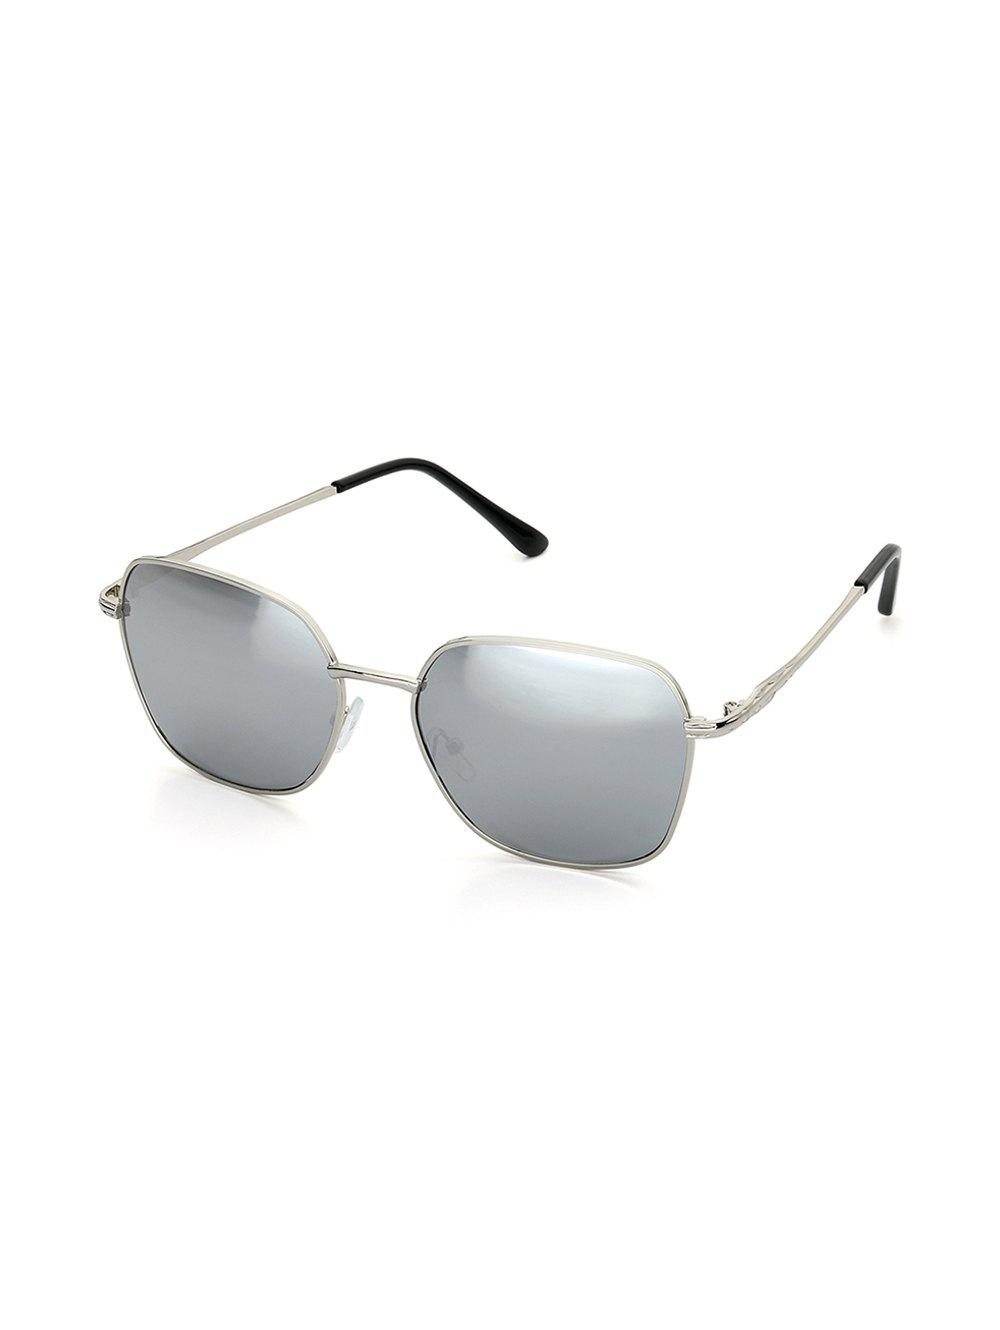 Retro Driver Square Metal Sunglasses - GRAY